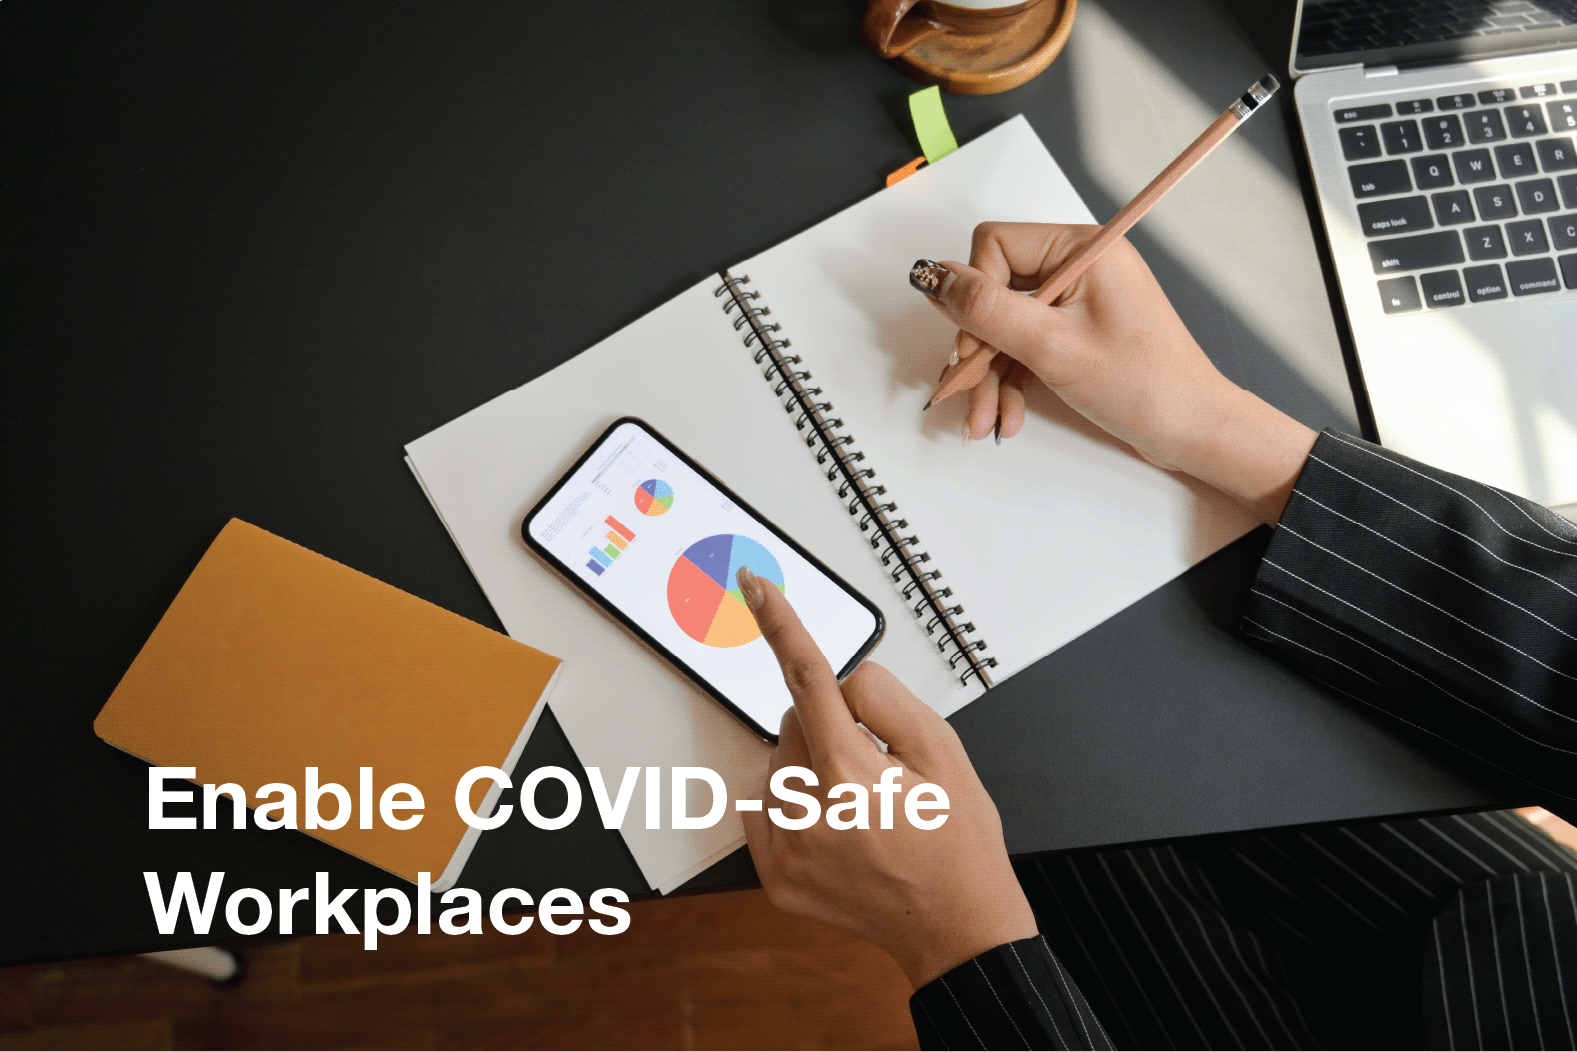 Enable COVID-Safe Workplaces